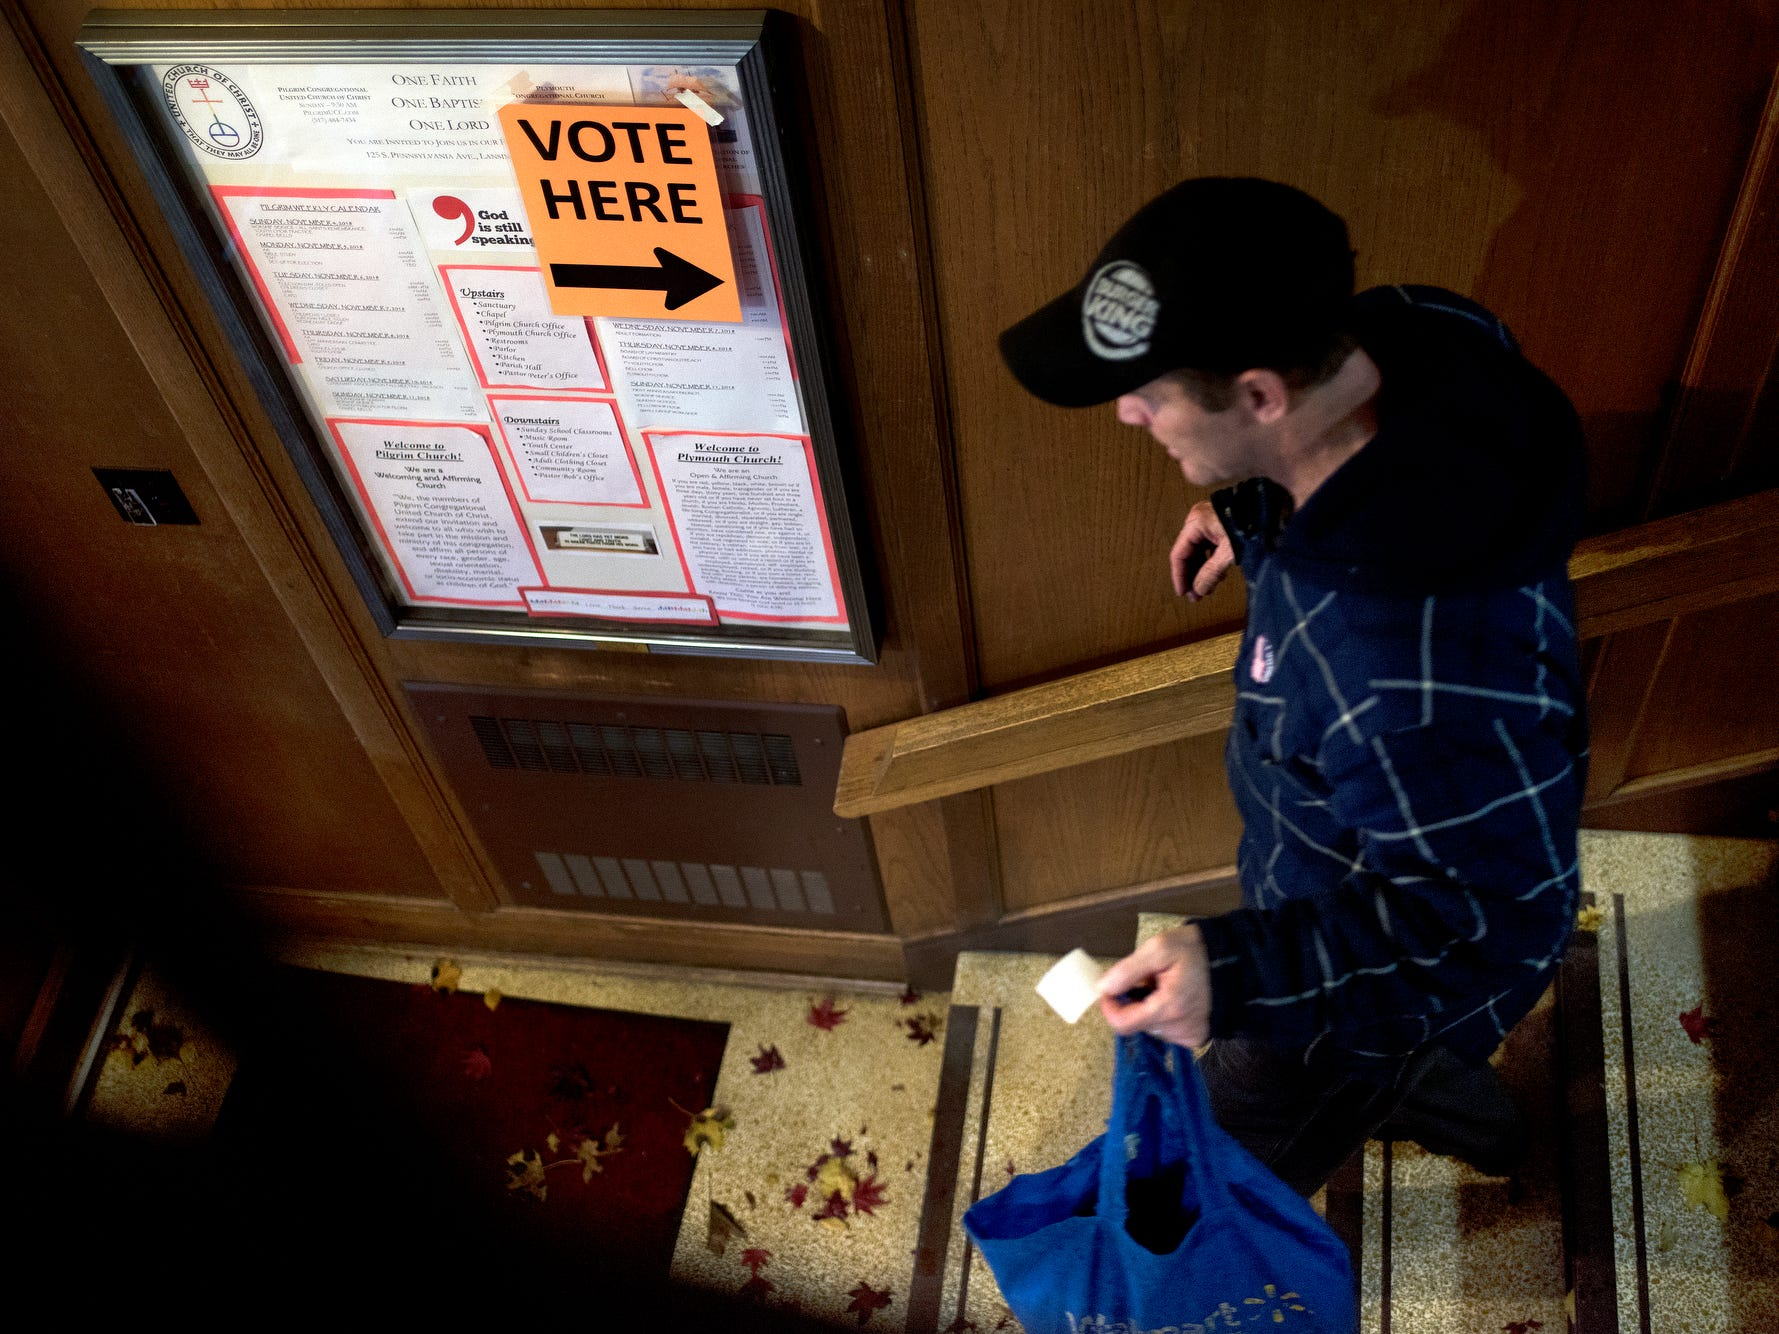 A voter leaves the polling place after casting a ballot on Tuesday, Nov. 6, 2018, at Pilgrim Congregational United Church of Christ in Lansing.